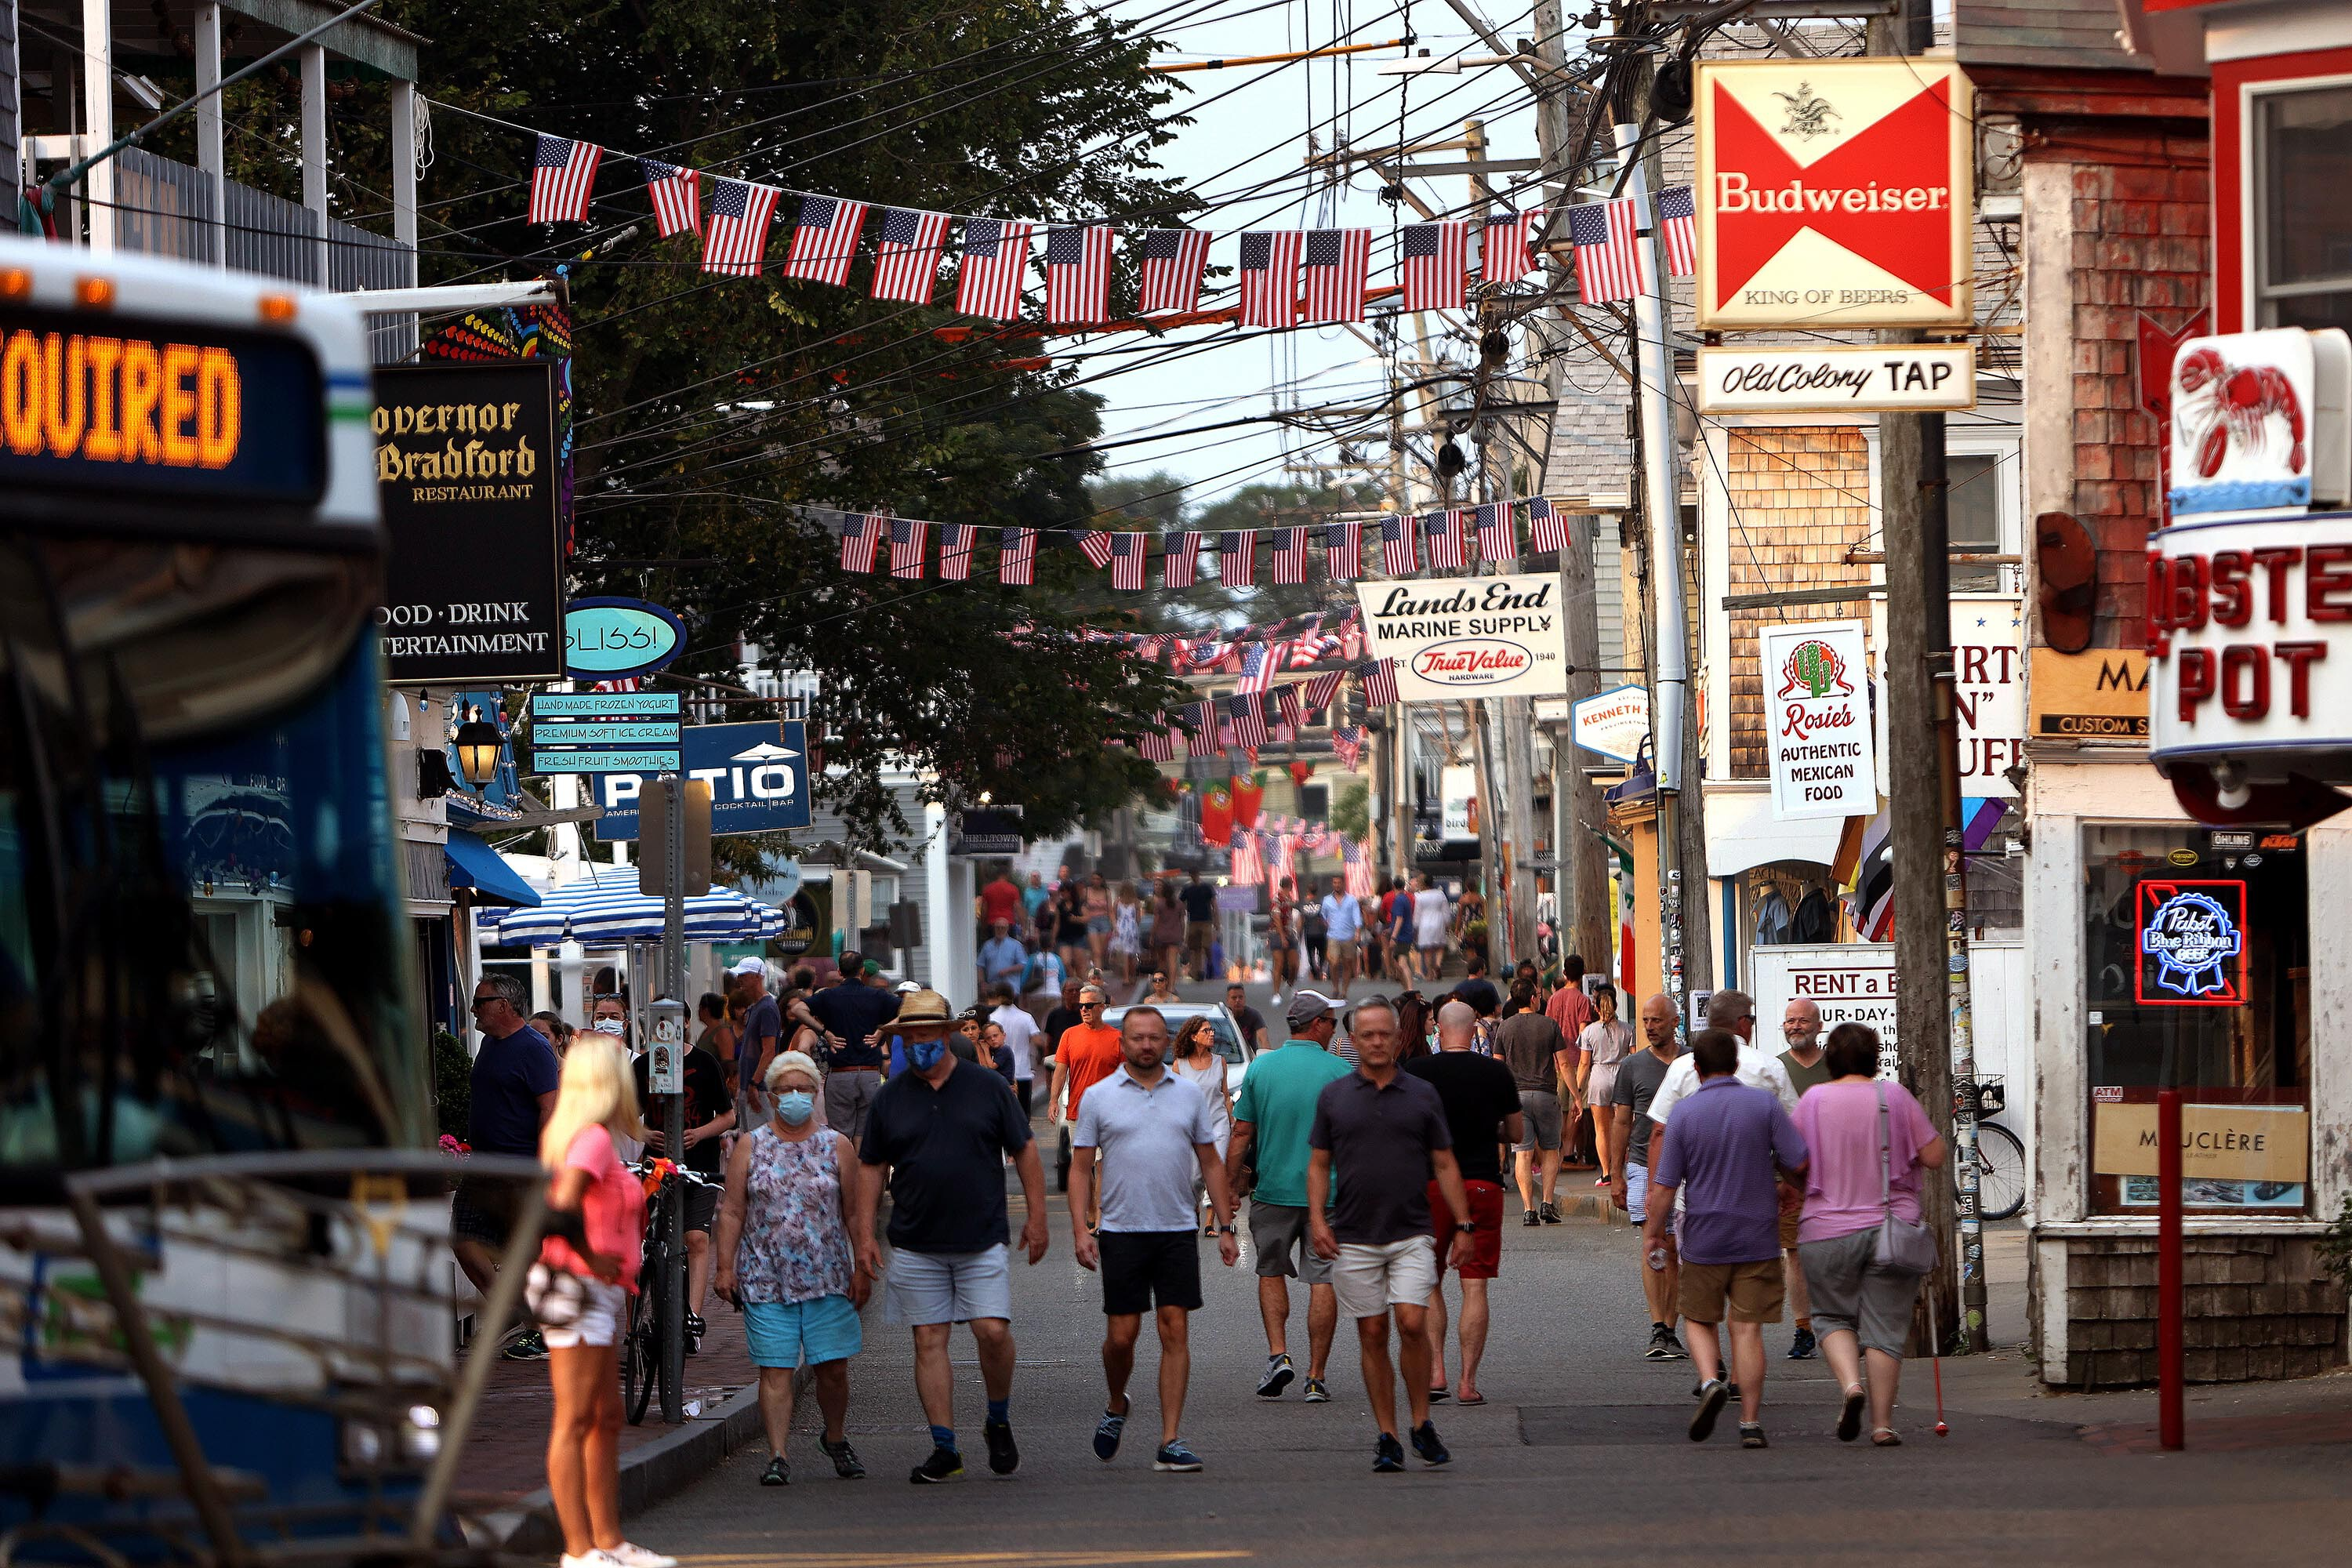 Provincetown issues a new mask mandate amid Covid-19 case surge after Fourth of July